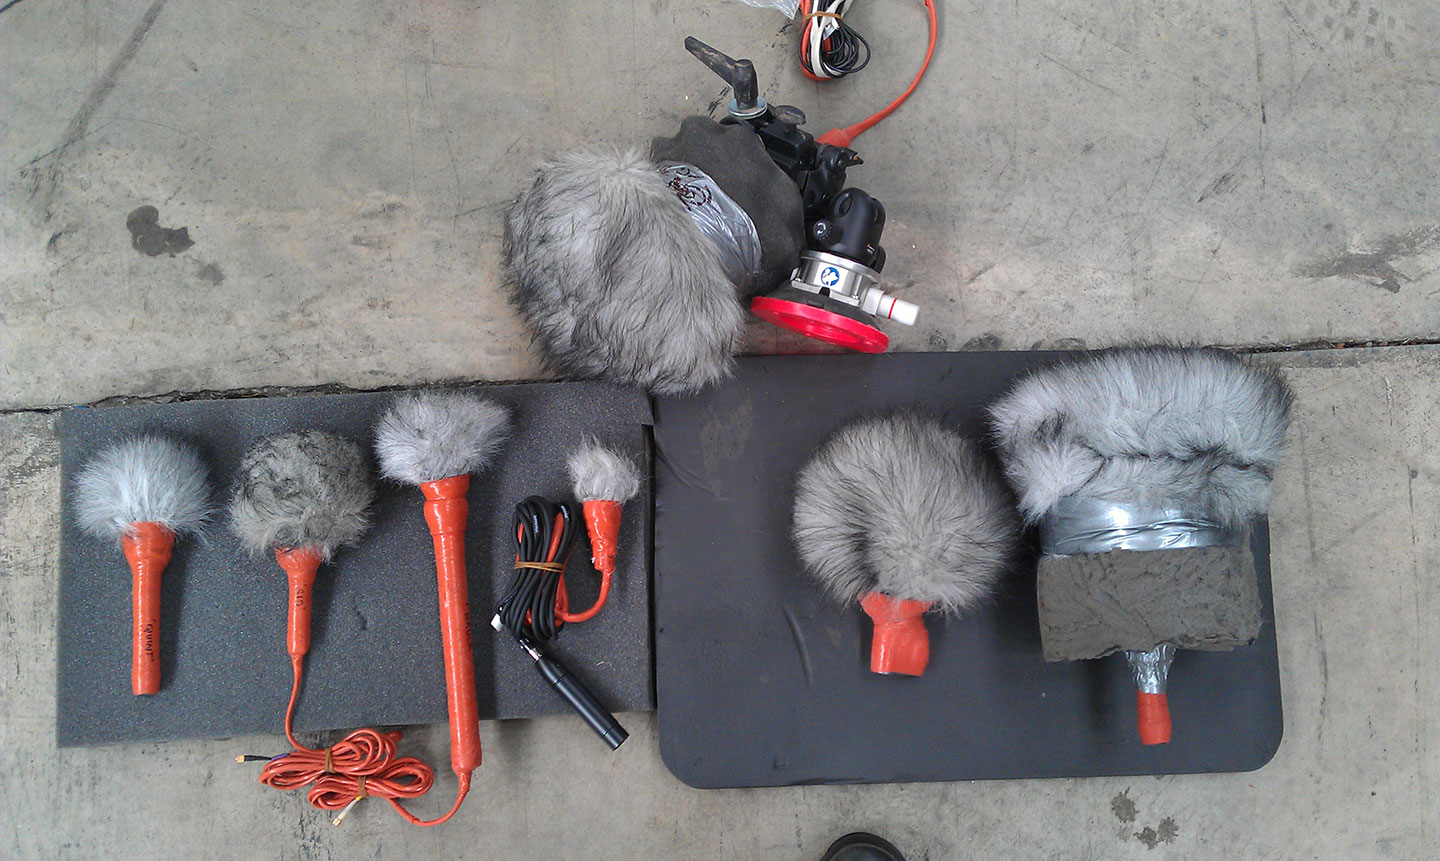 Some of Jojo's mic kit for the job.